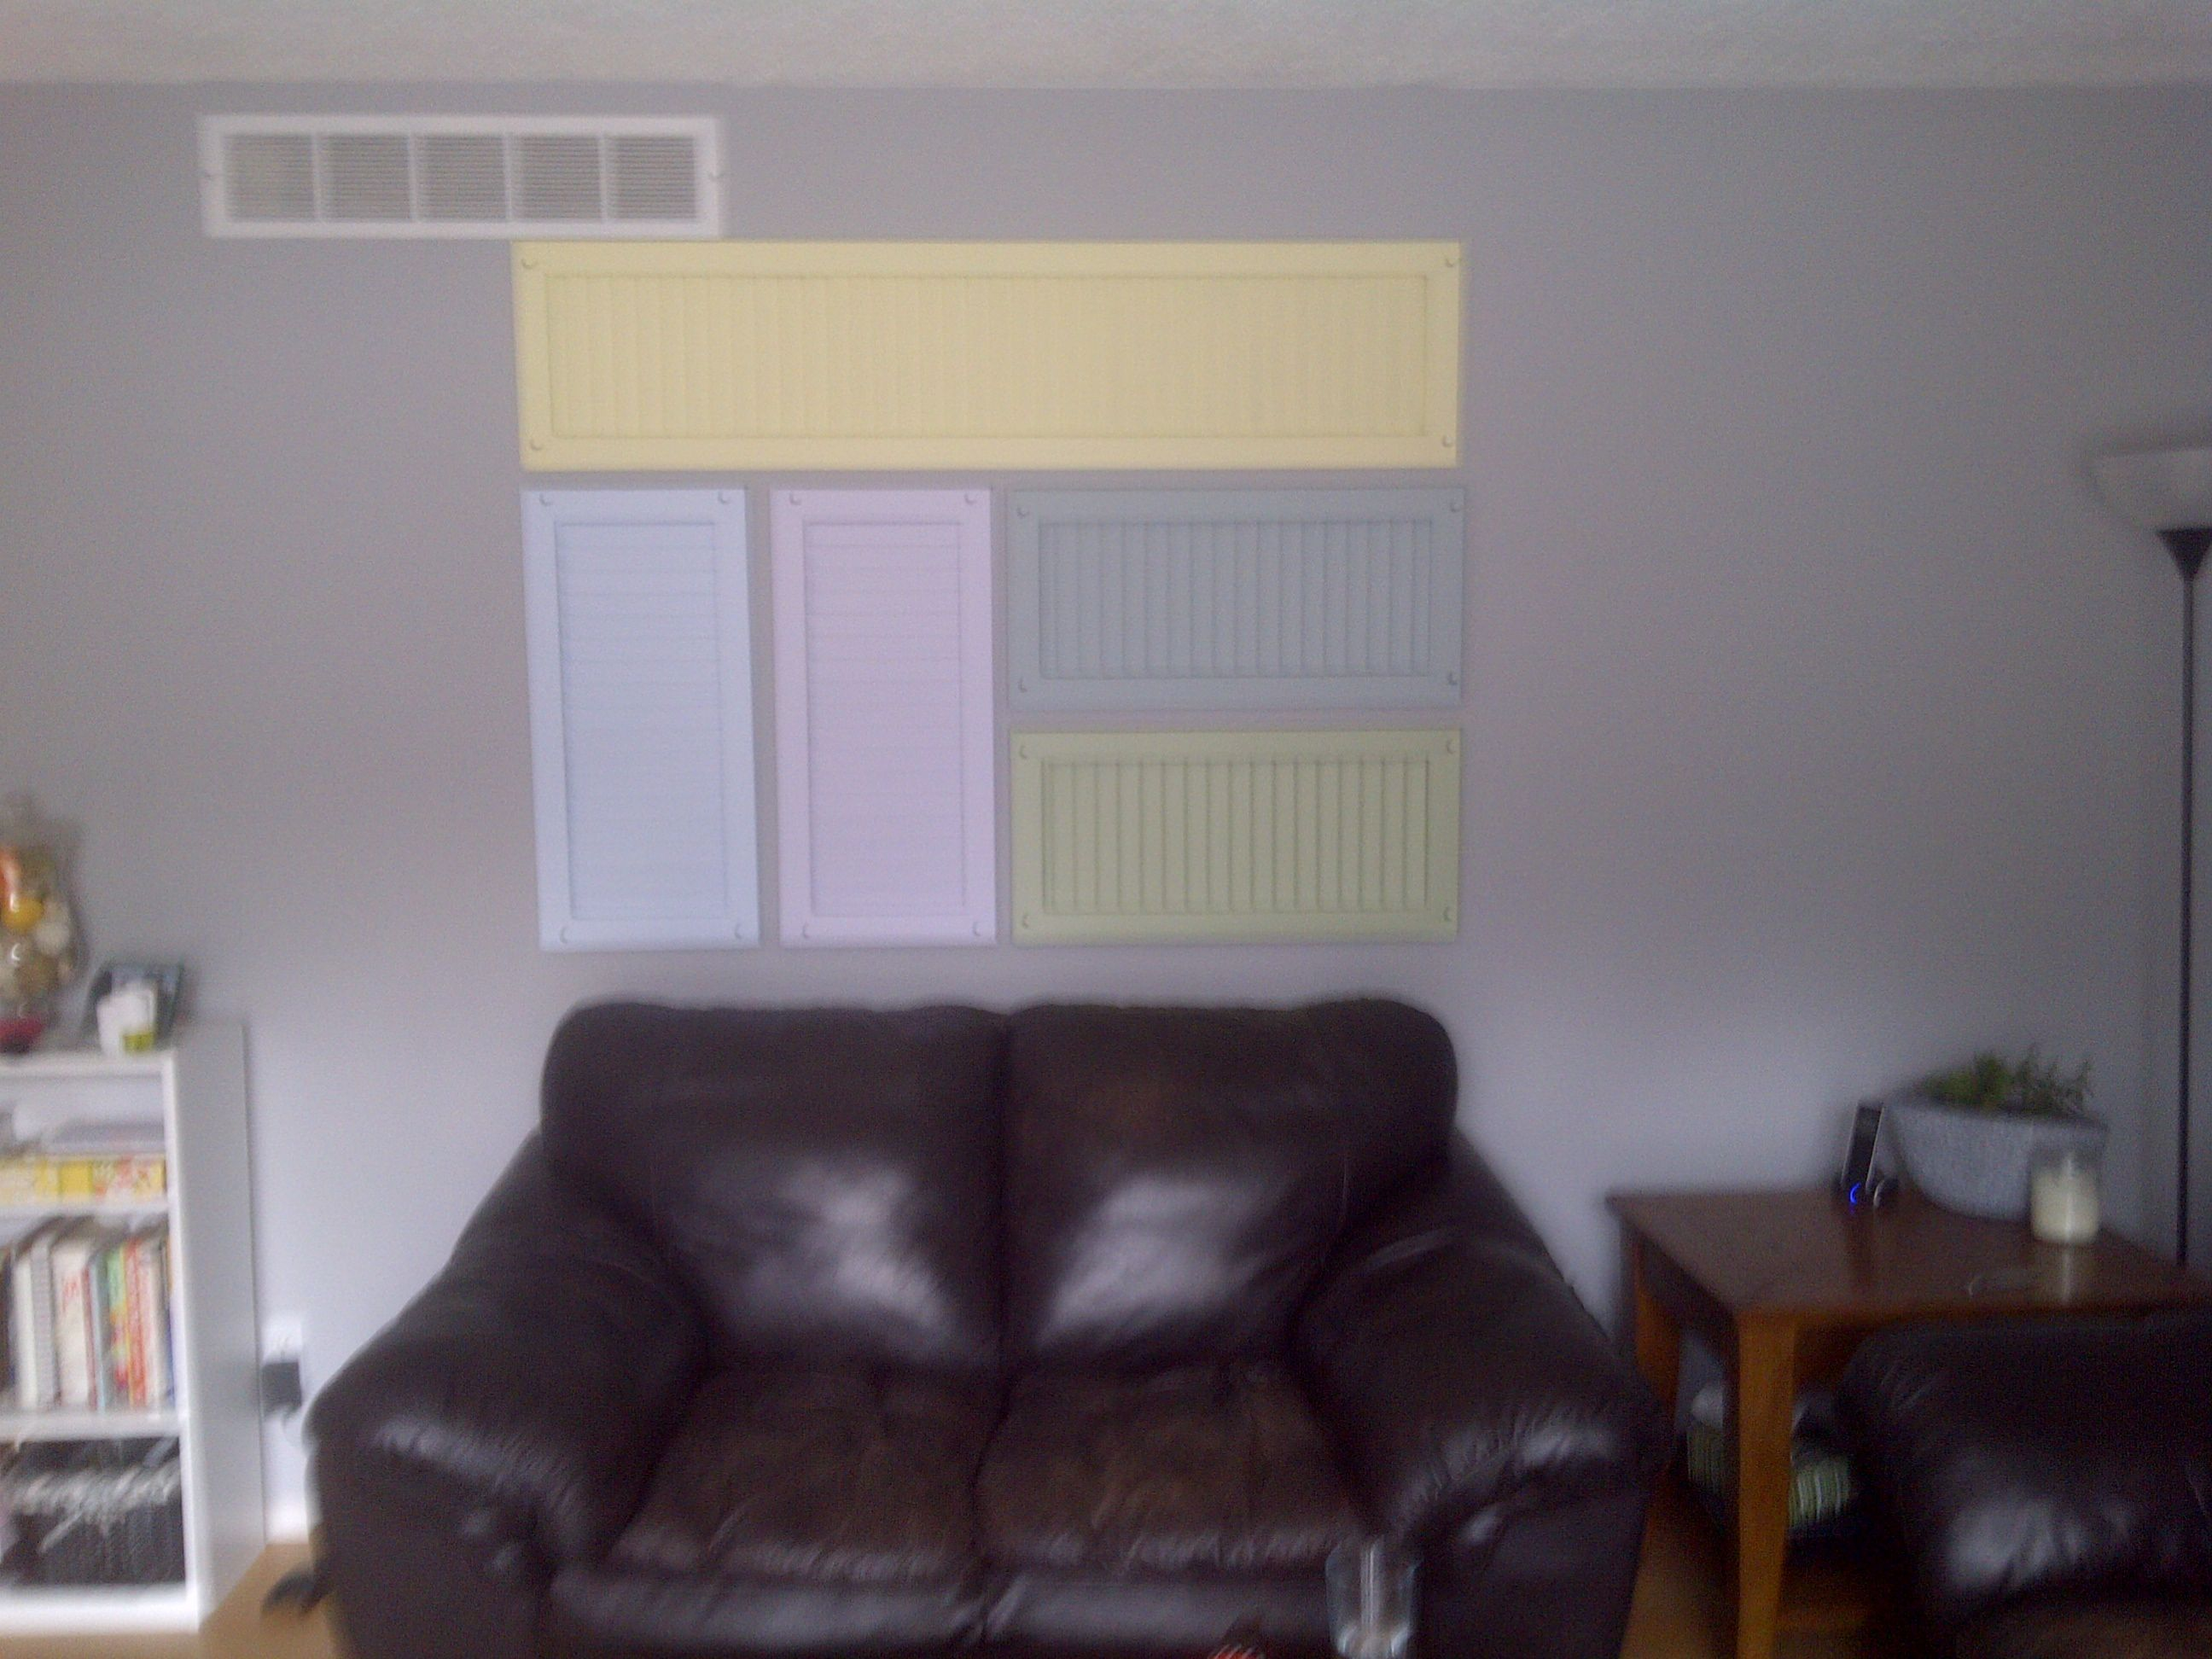 I recycled old metal shutters from my windows to add some character to my livingroom.